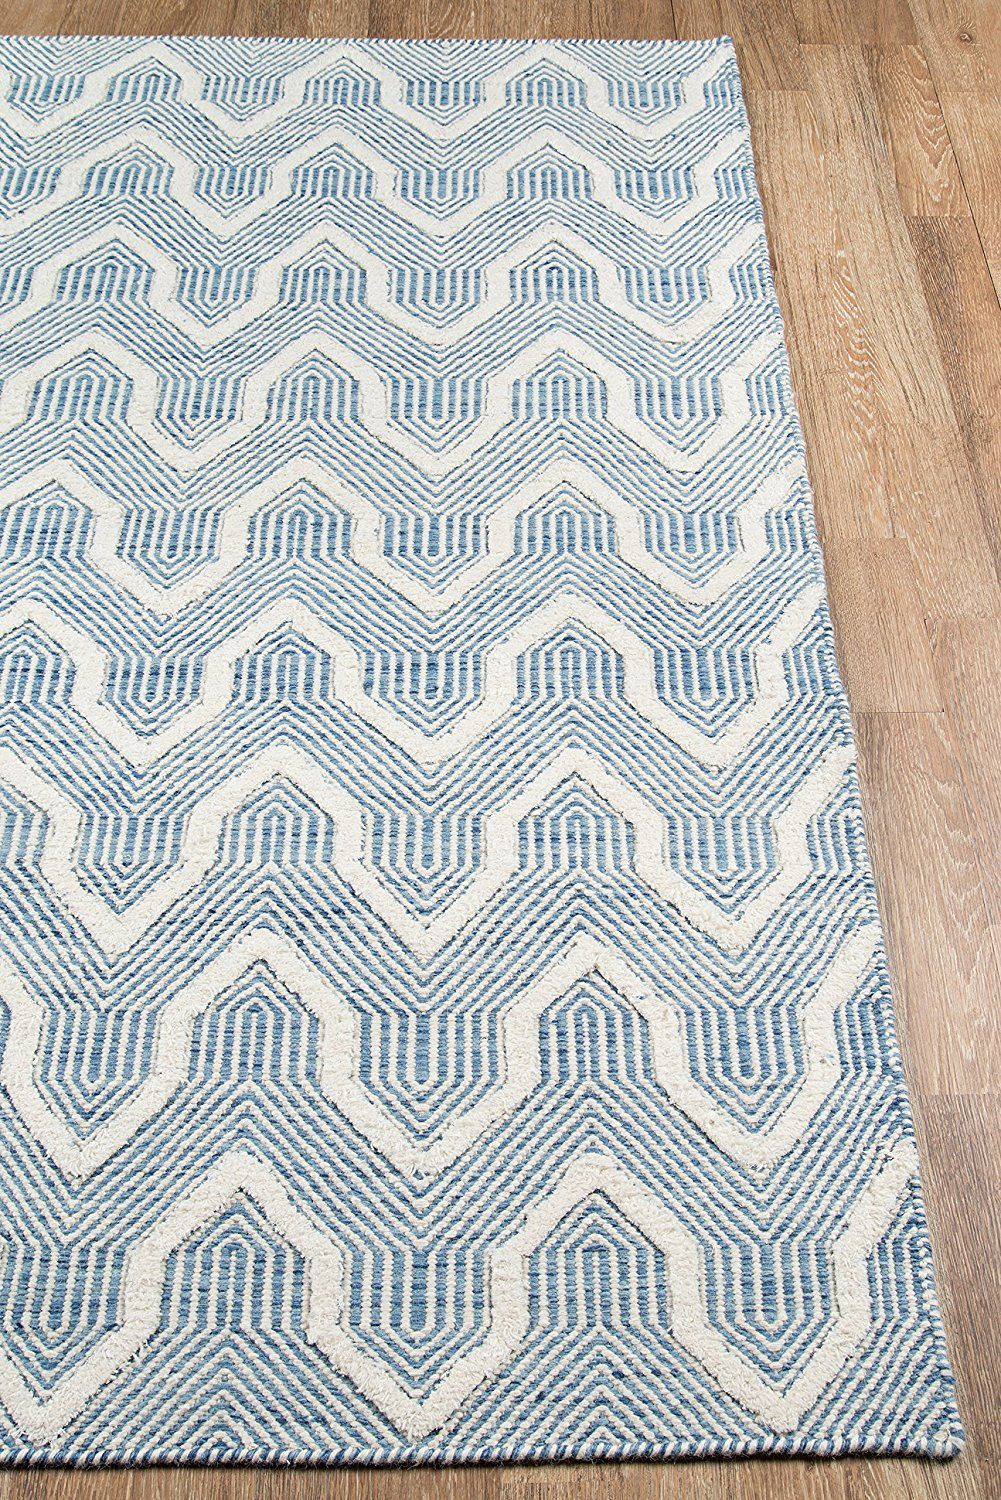 Amazon Com Erin Gates Langdon Collection Prince Hand Woven Wool Area Rug 7 6 X 9 6 Blue Kitchen Dining Wool Area Rugs Area Rug Decor Area Rugs